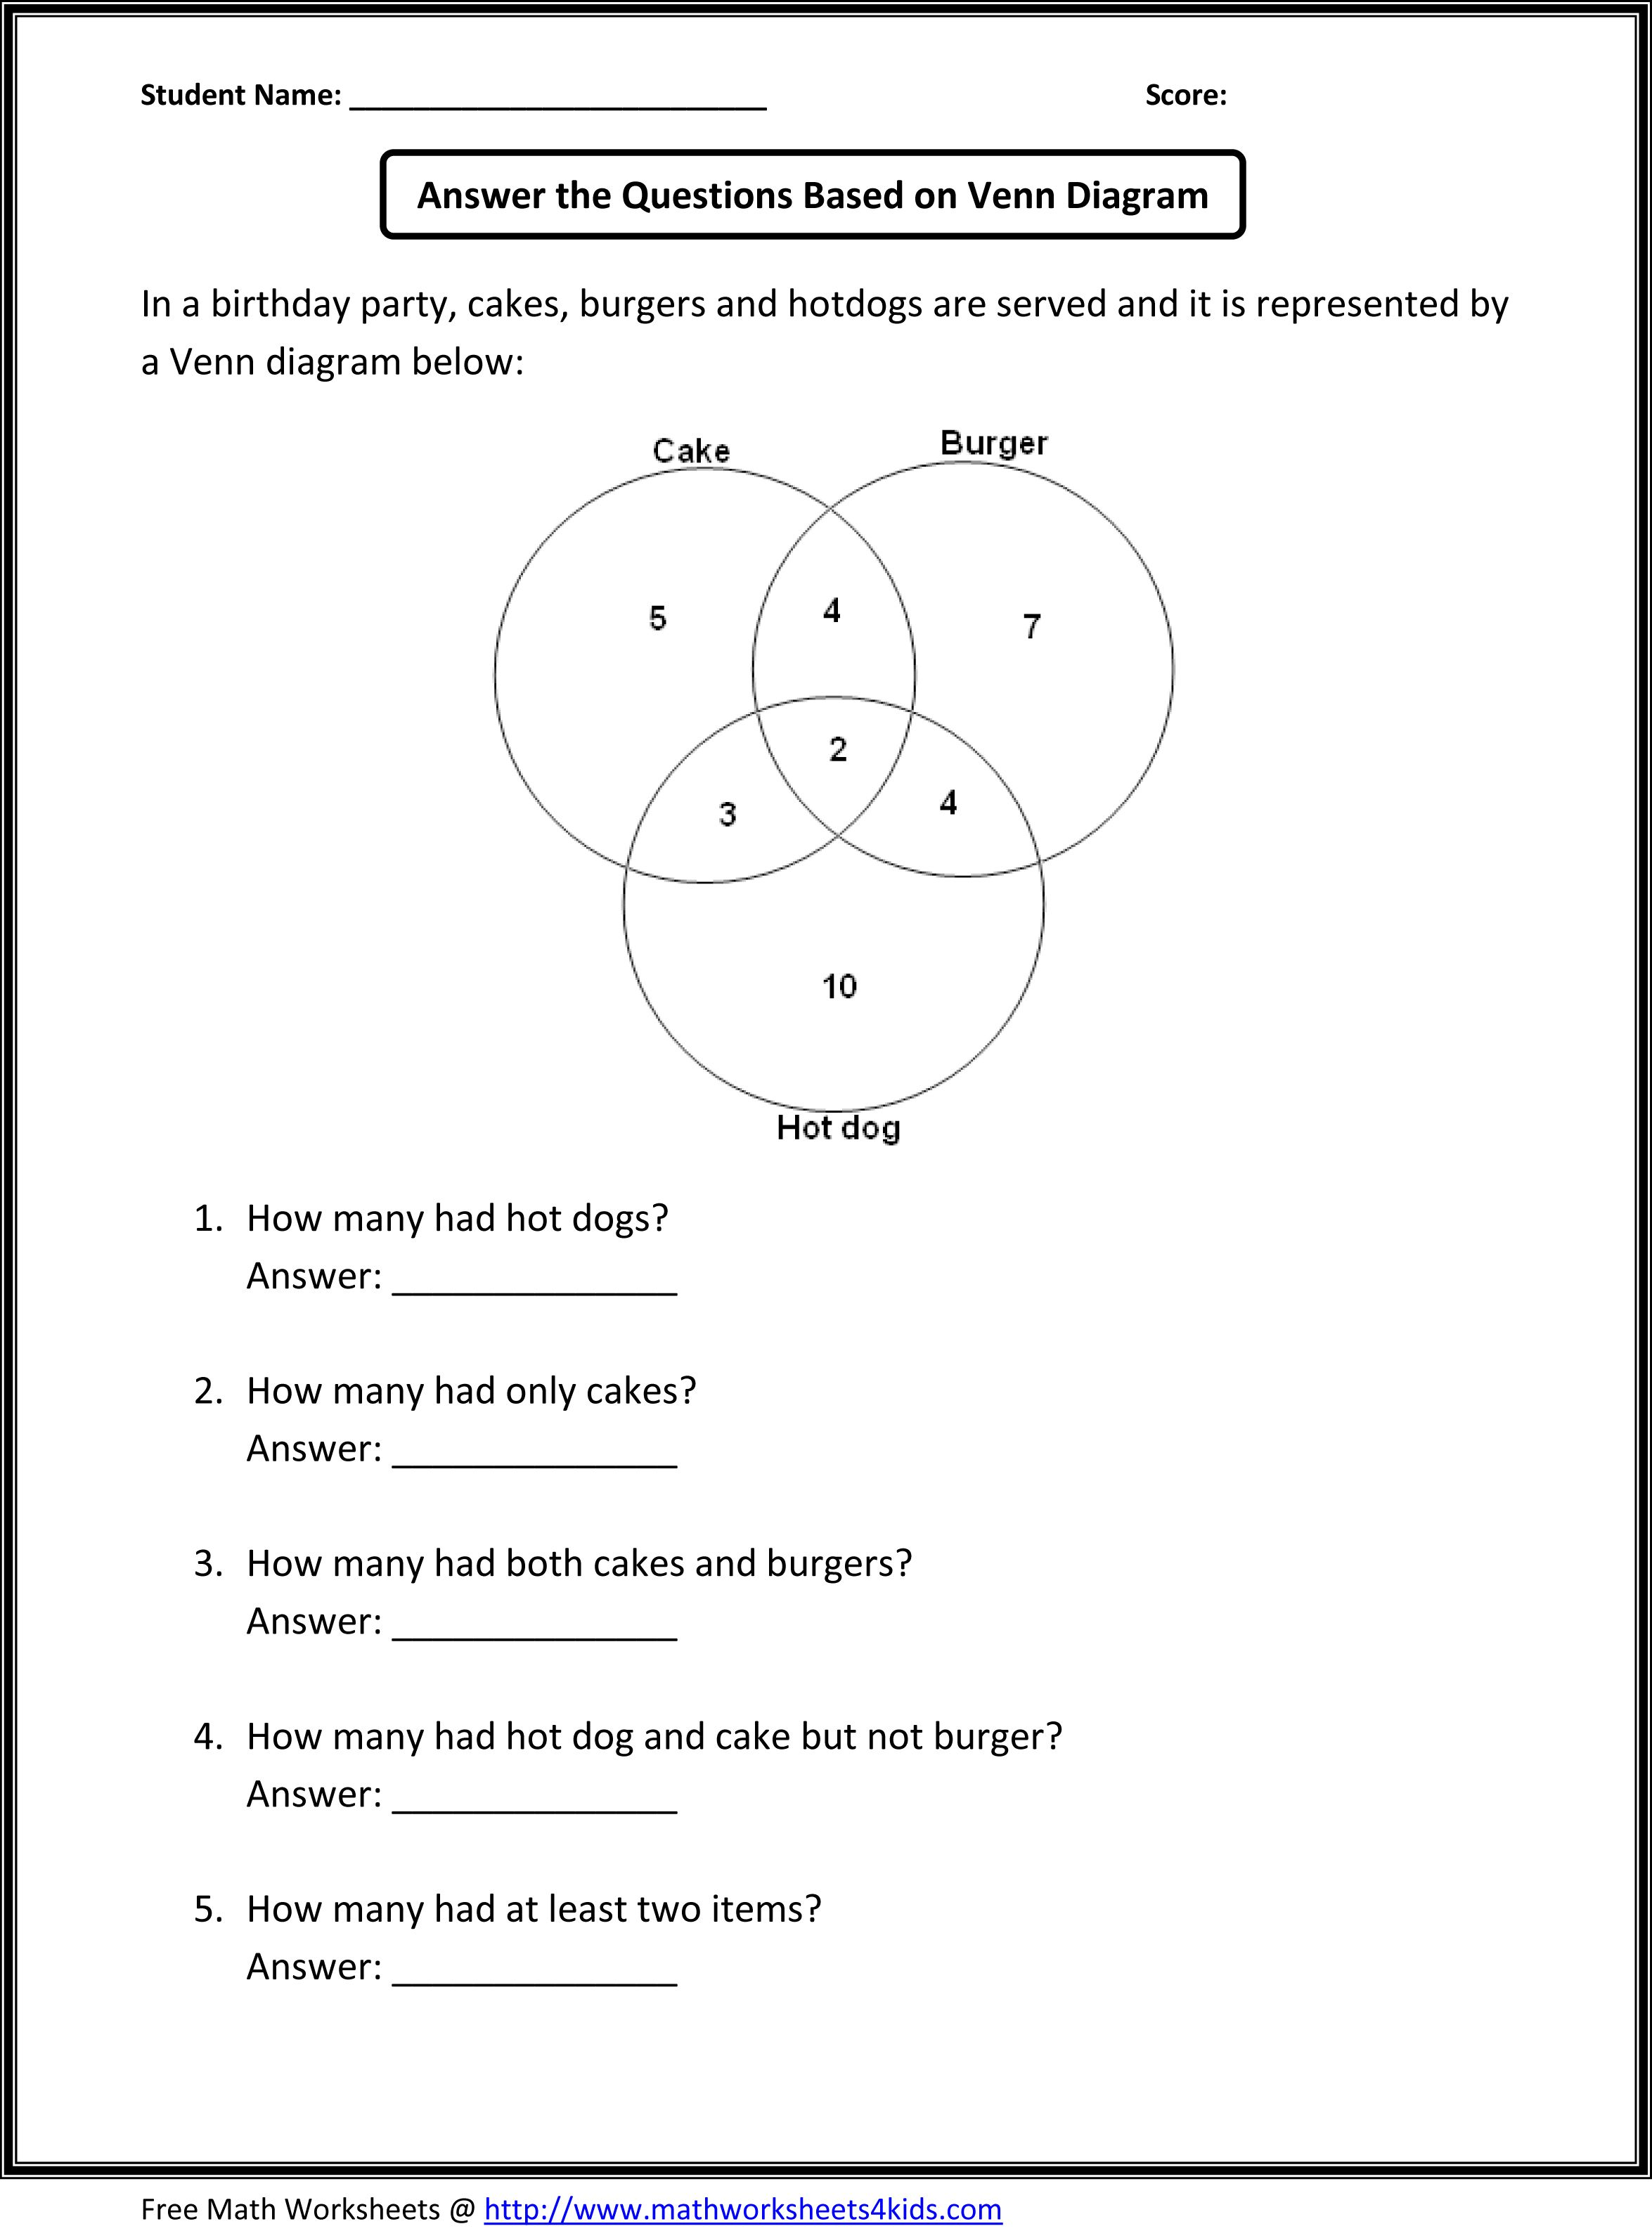 Standard Maths Worksheets Scalien – Class 5 Maths Worksheet